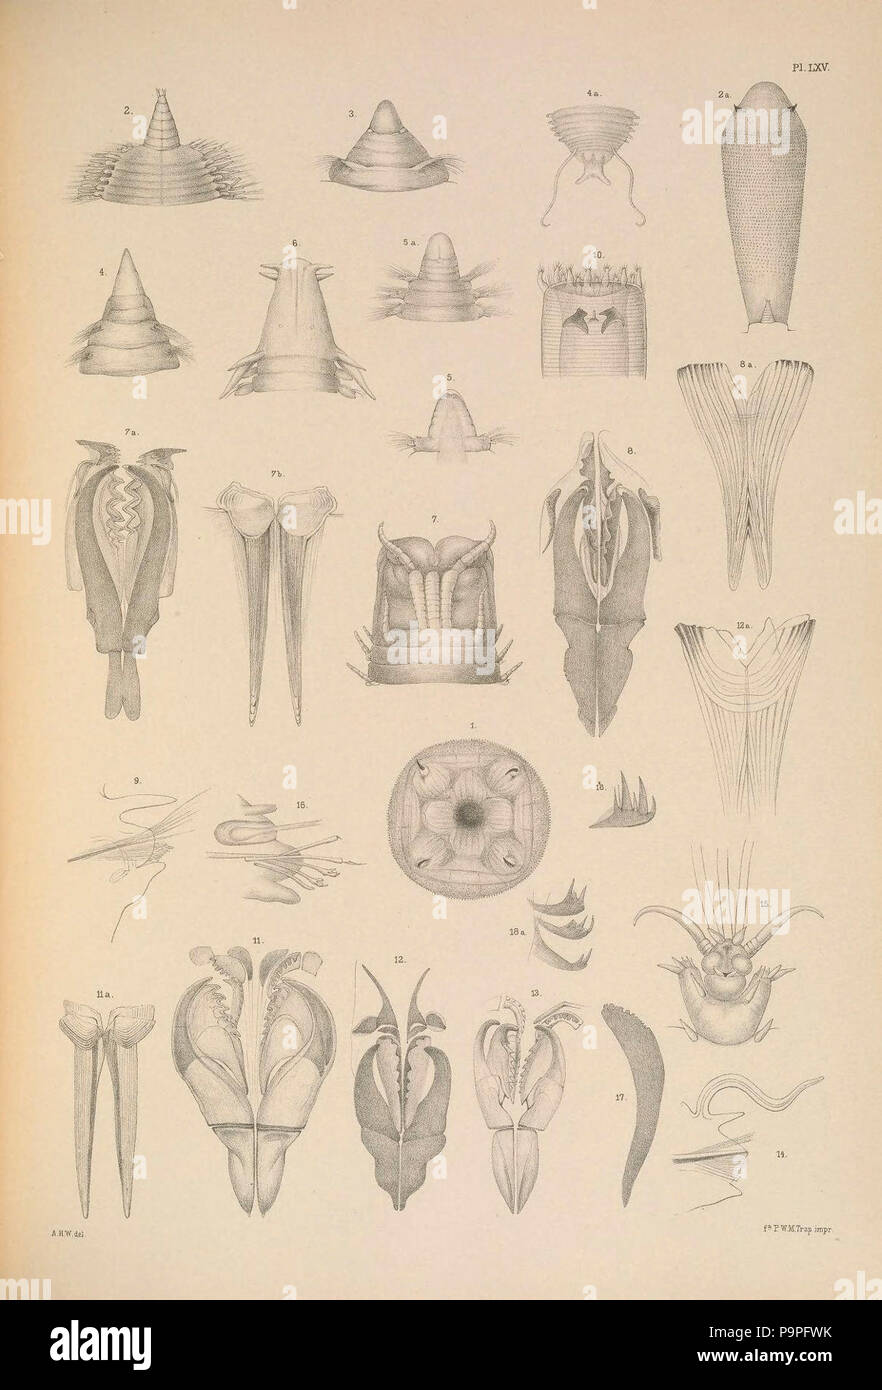 A monograph of the British marine annelids 1908 LXV. - Stock Image